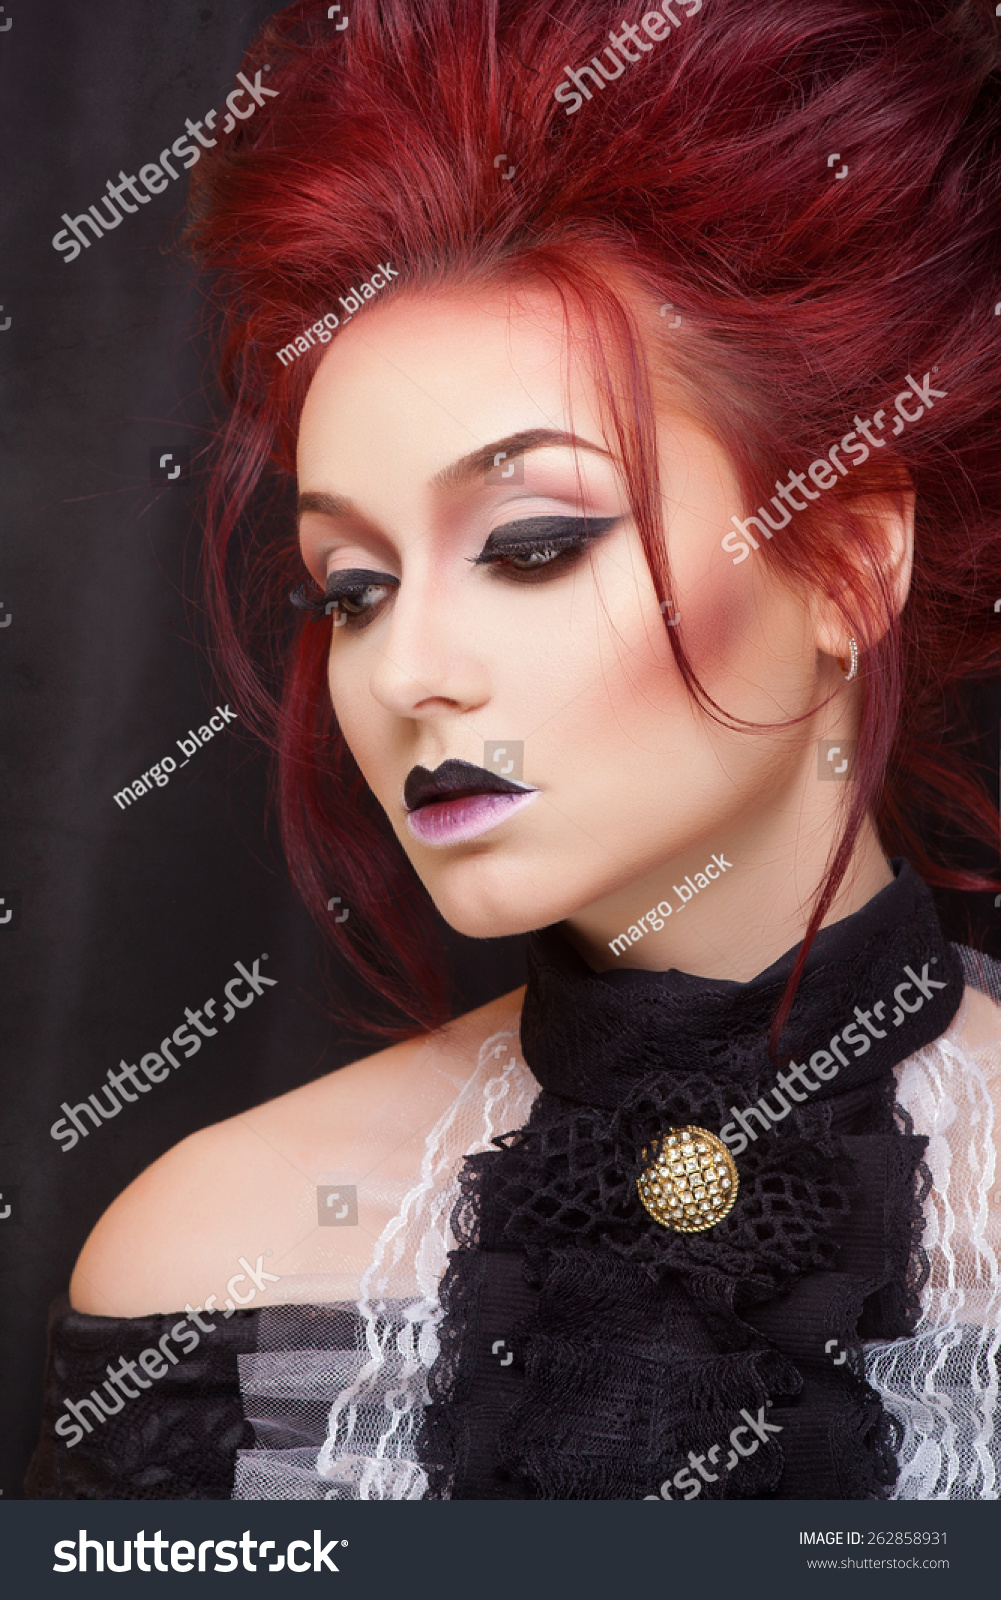 Sexy Vampire With Gothic Makeup And Red Hair Close Up Portrait